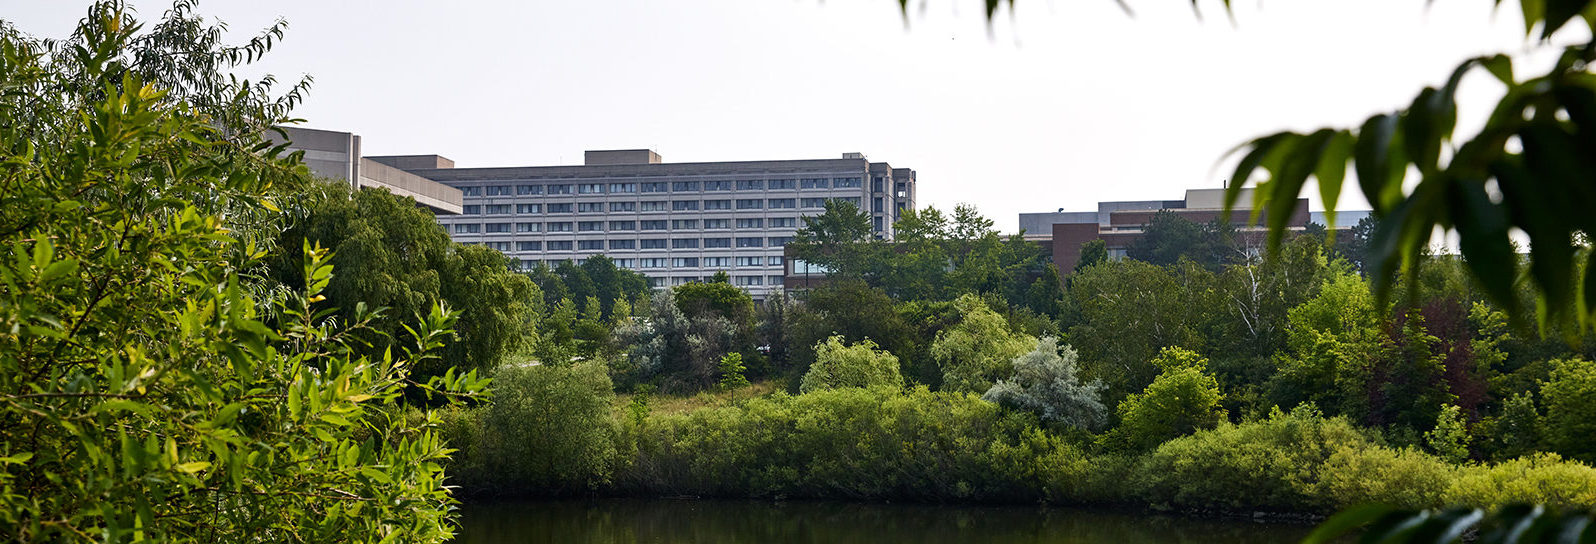 Keele Campus stong pond FEATURED image for Yfile